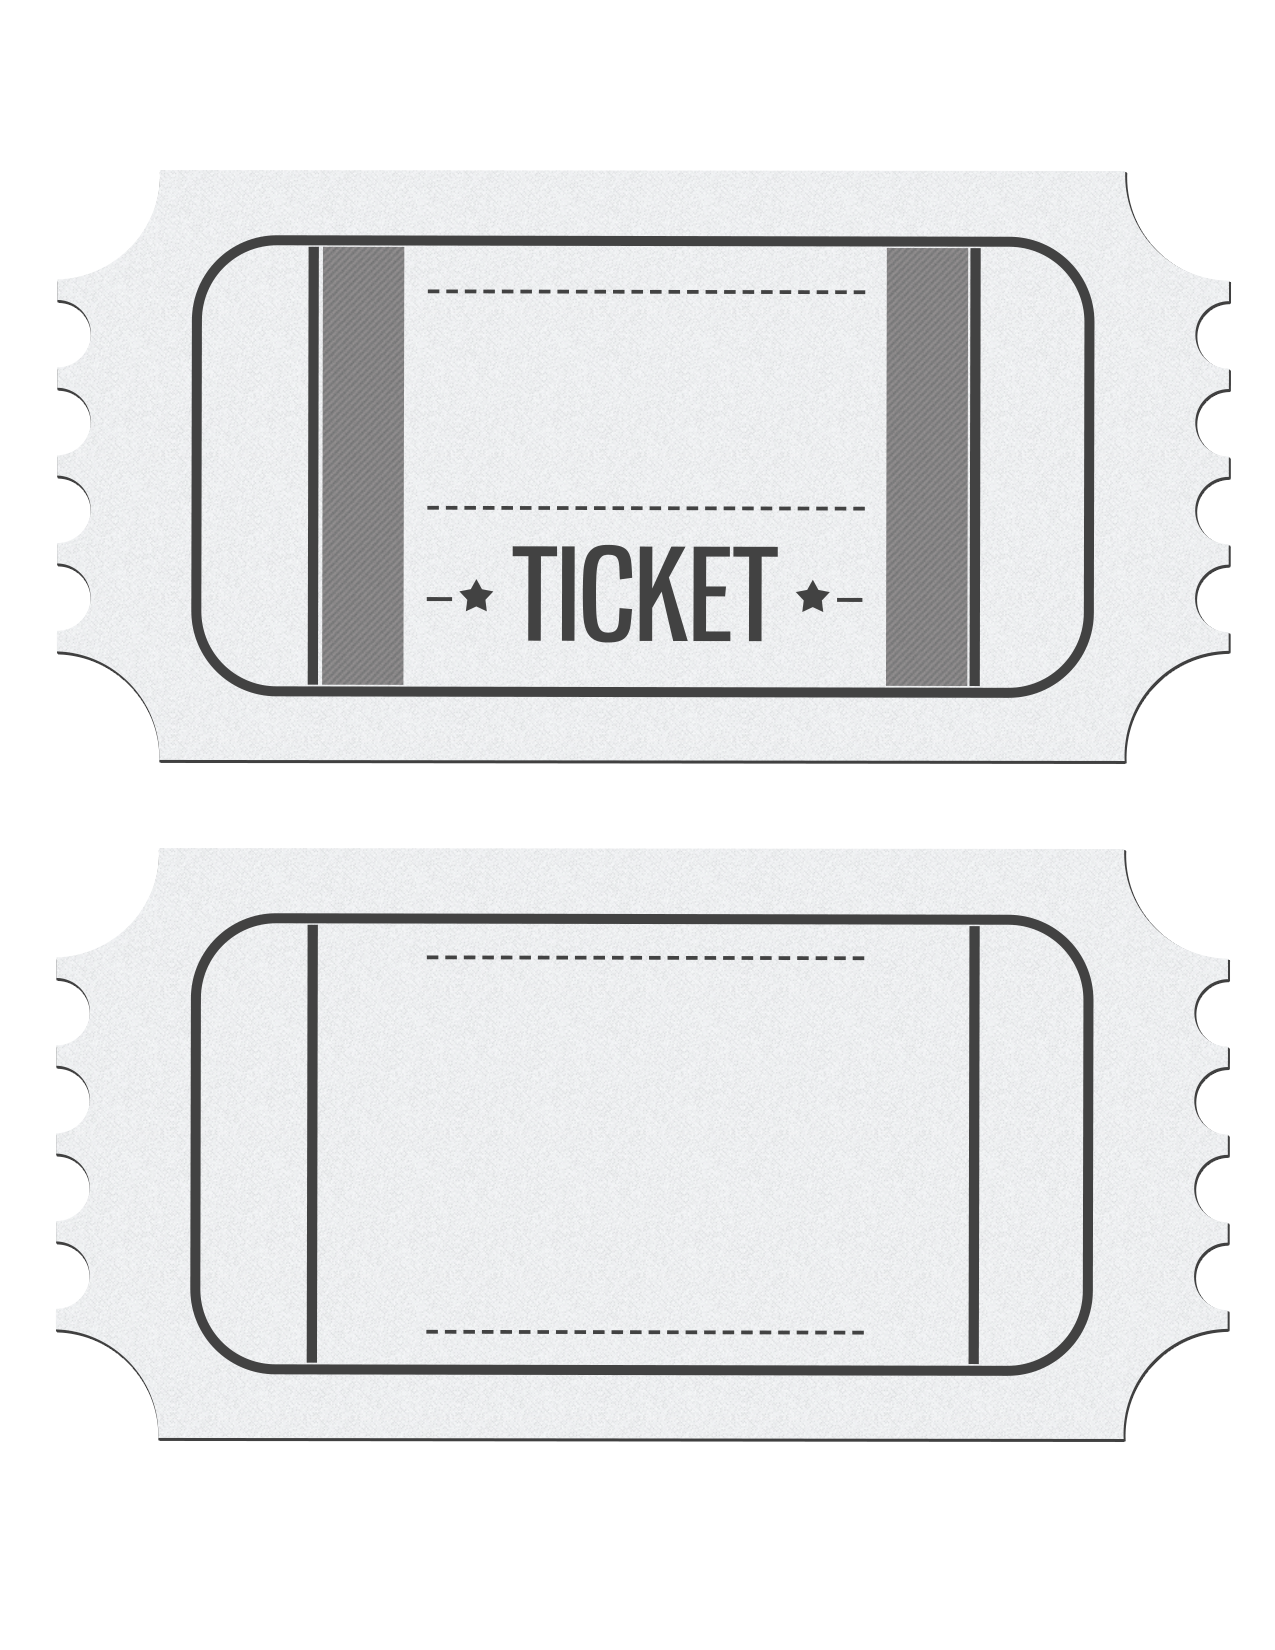 Blank cinema ticket clipart clipart free stock Pin by Lucy Escobedo on Cool | Ticket template, Ticket invitation ... clipart free stock